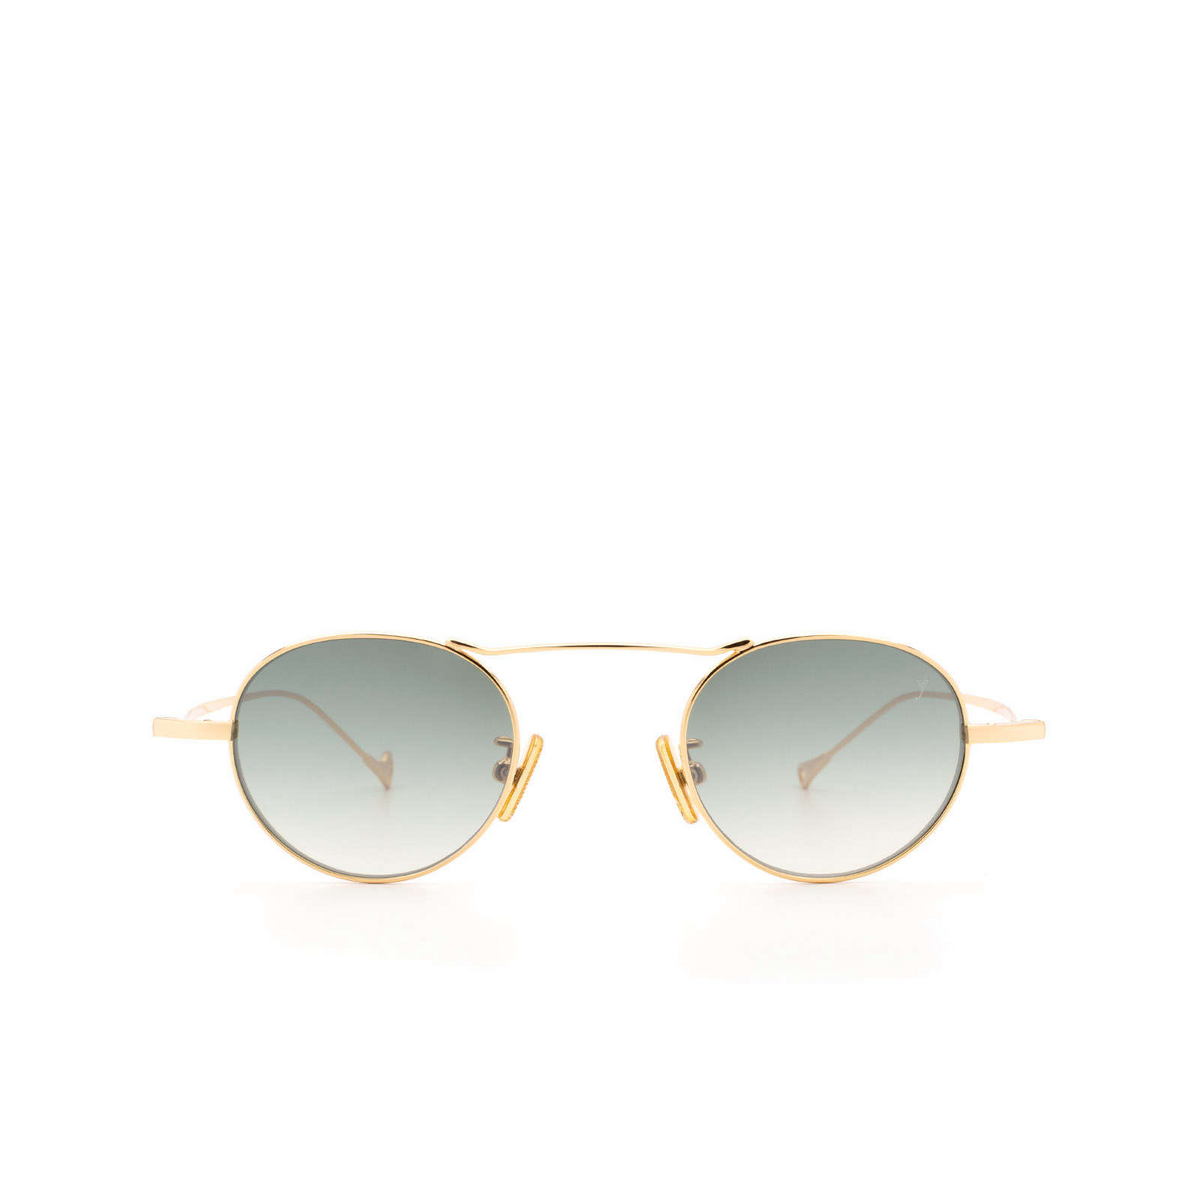 Eyepetizer® Round Sunglasses: Yves color Gold C.4-25F - front view.